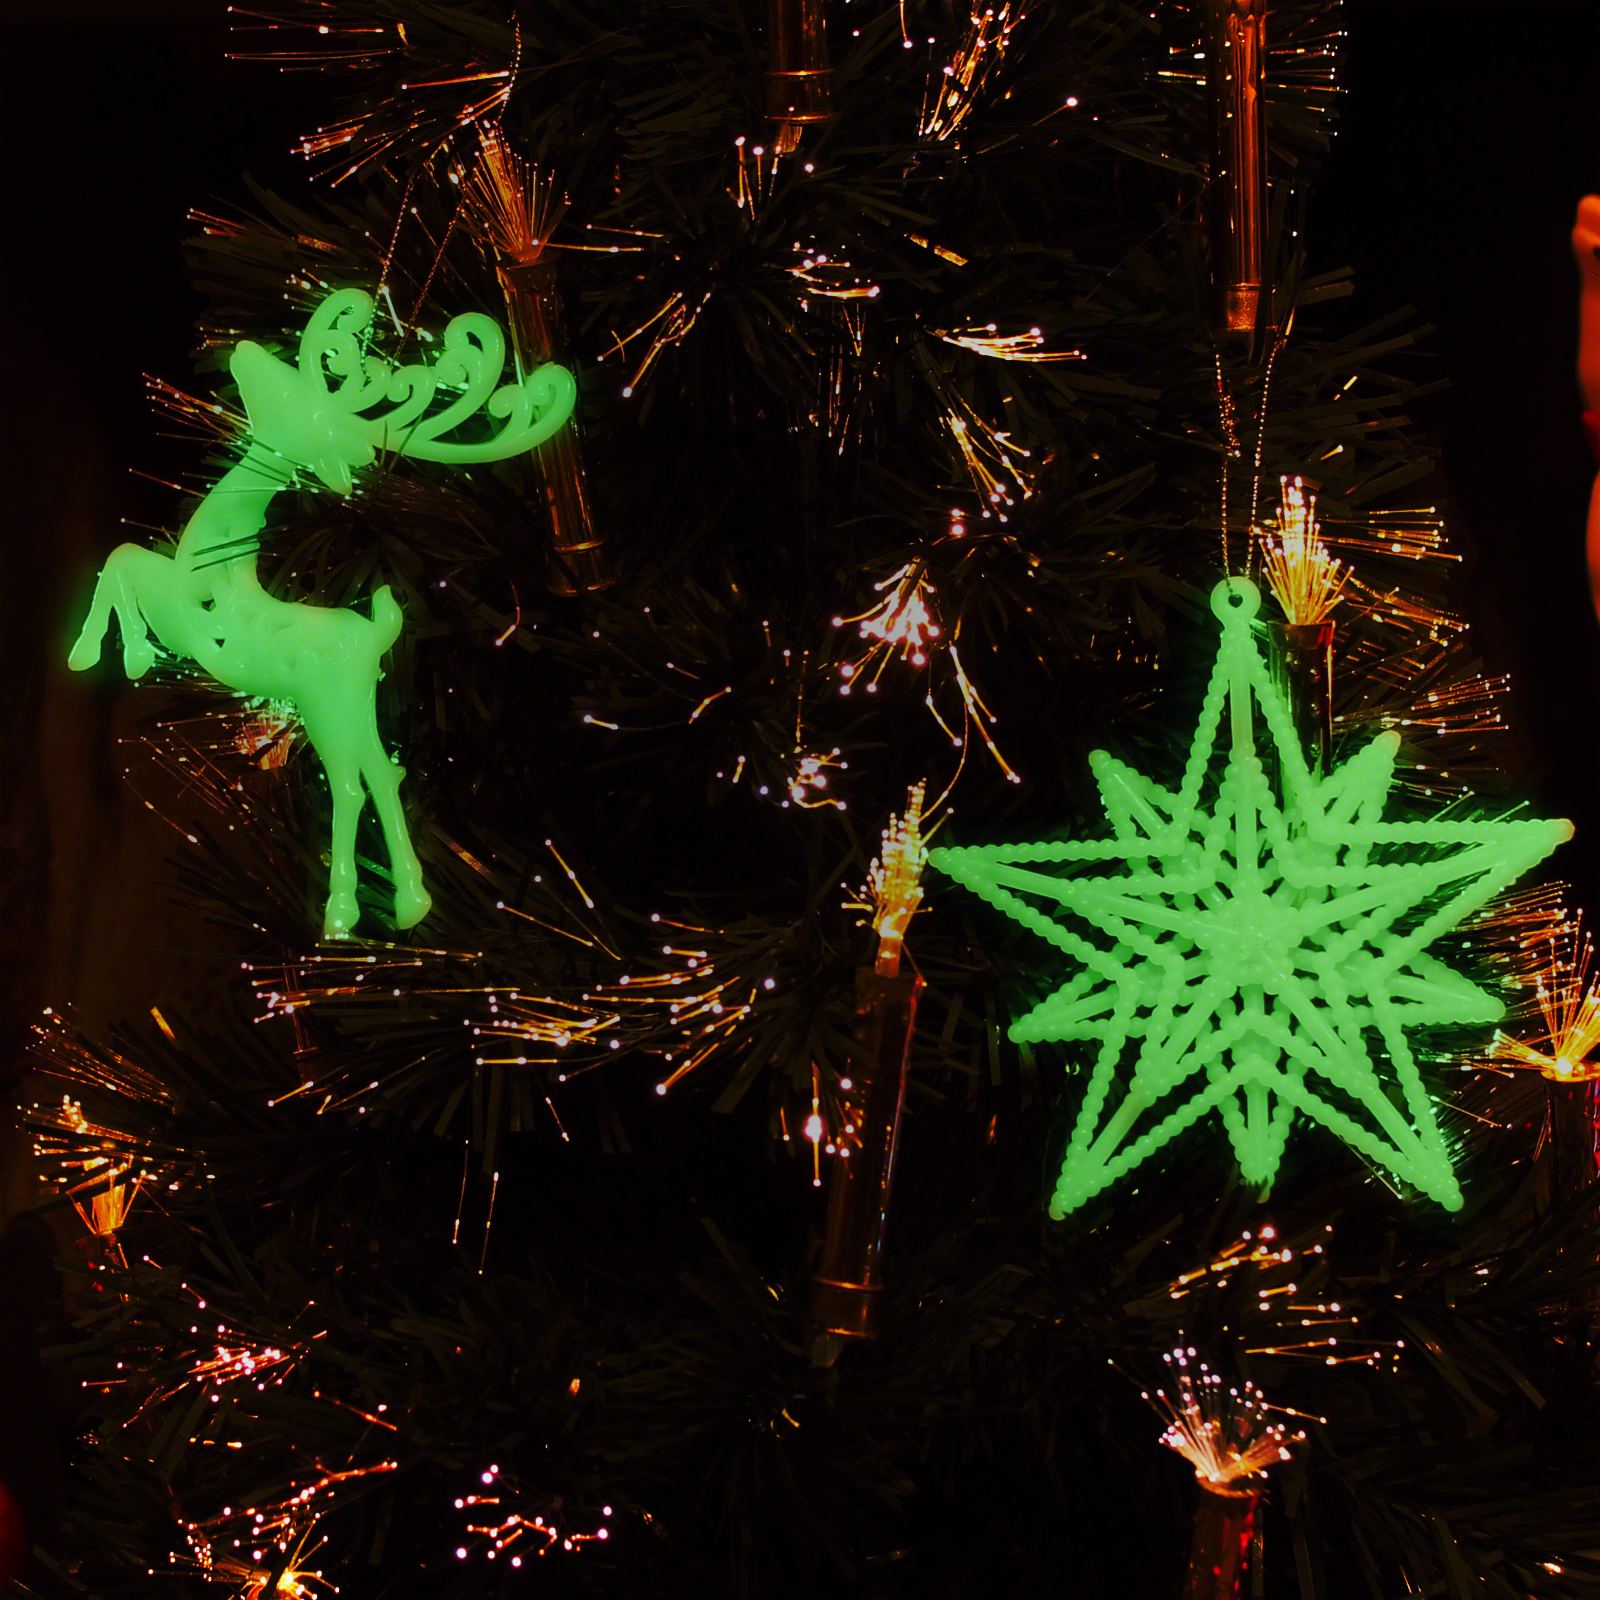 Glow in the Dark Christmas Tree Decorations